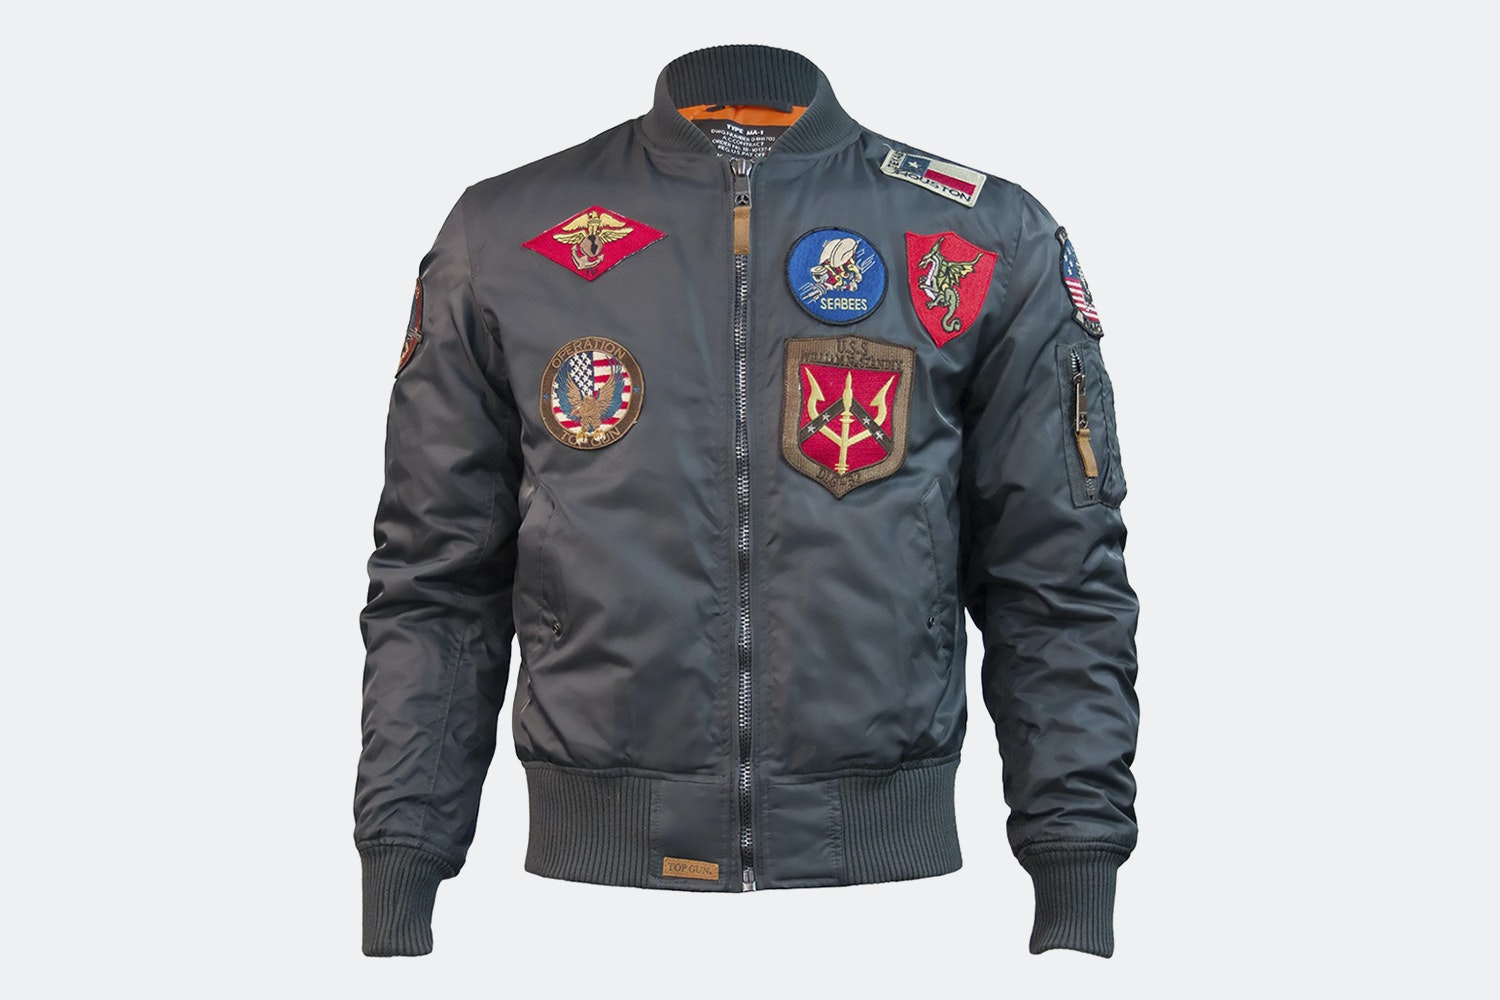 MA-1 nylon bomber with patches - Gray (+ $15)